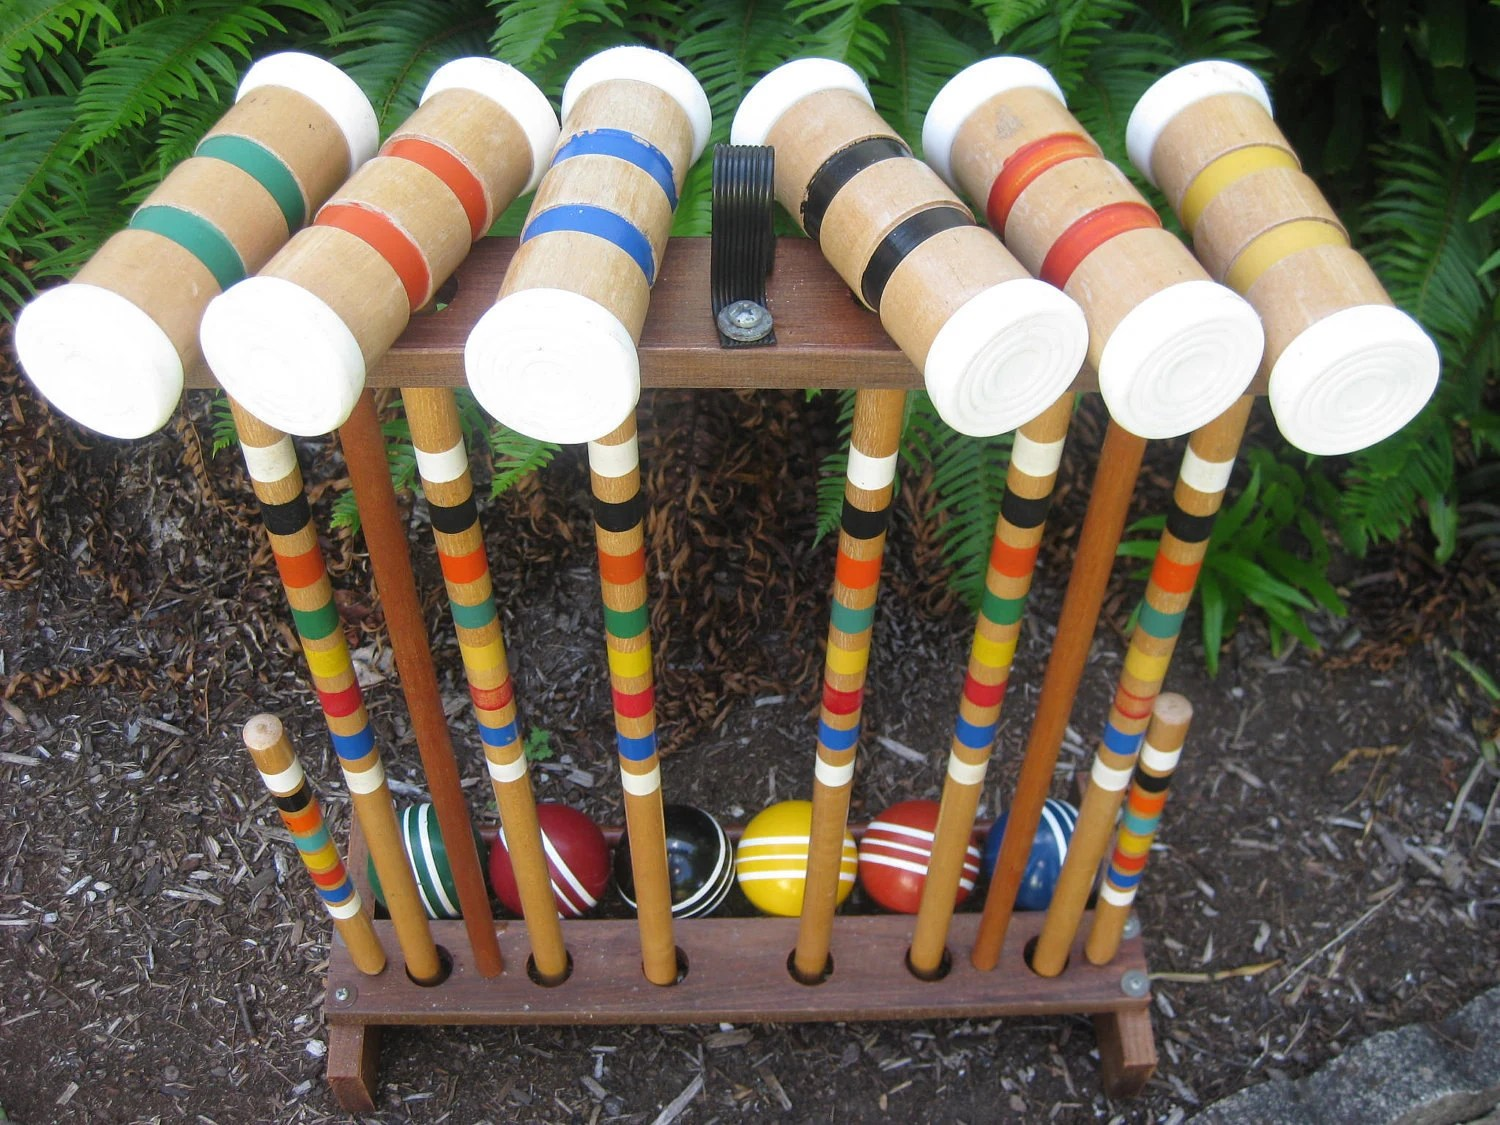 Vintage Wood Croquet Set With Stand